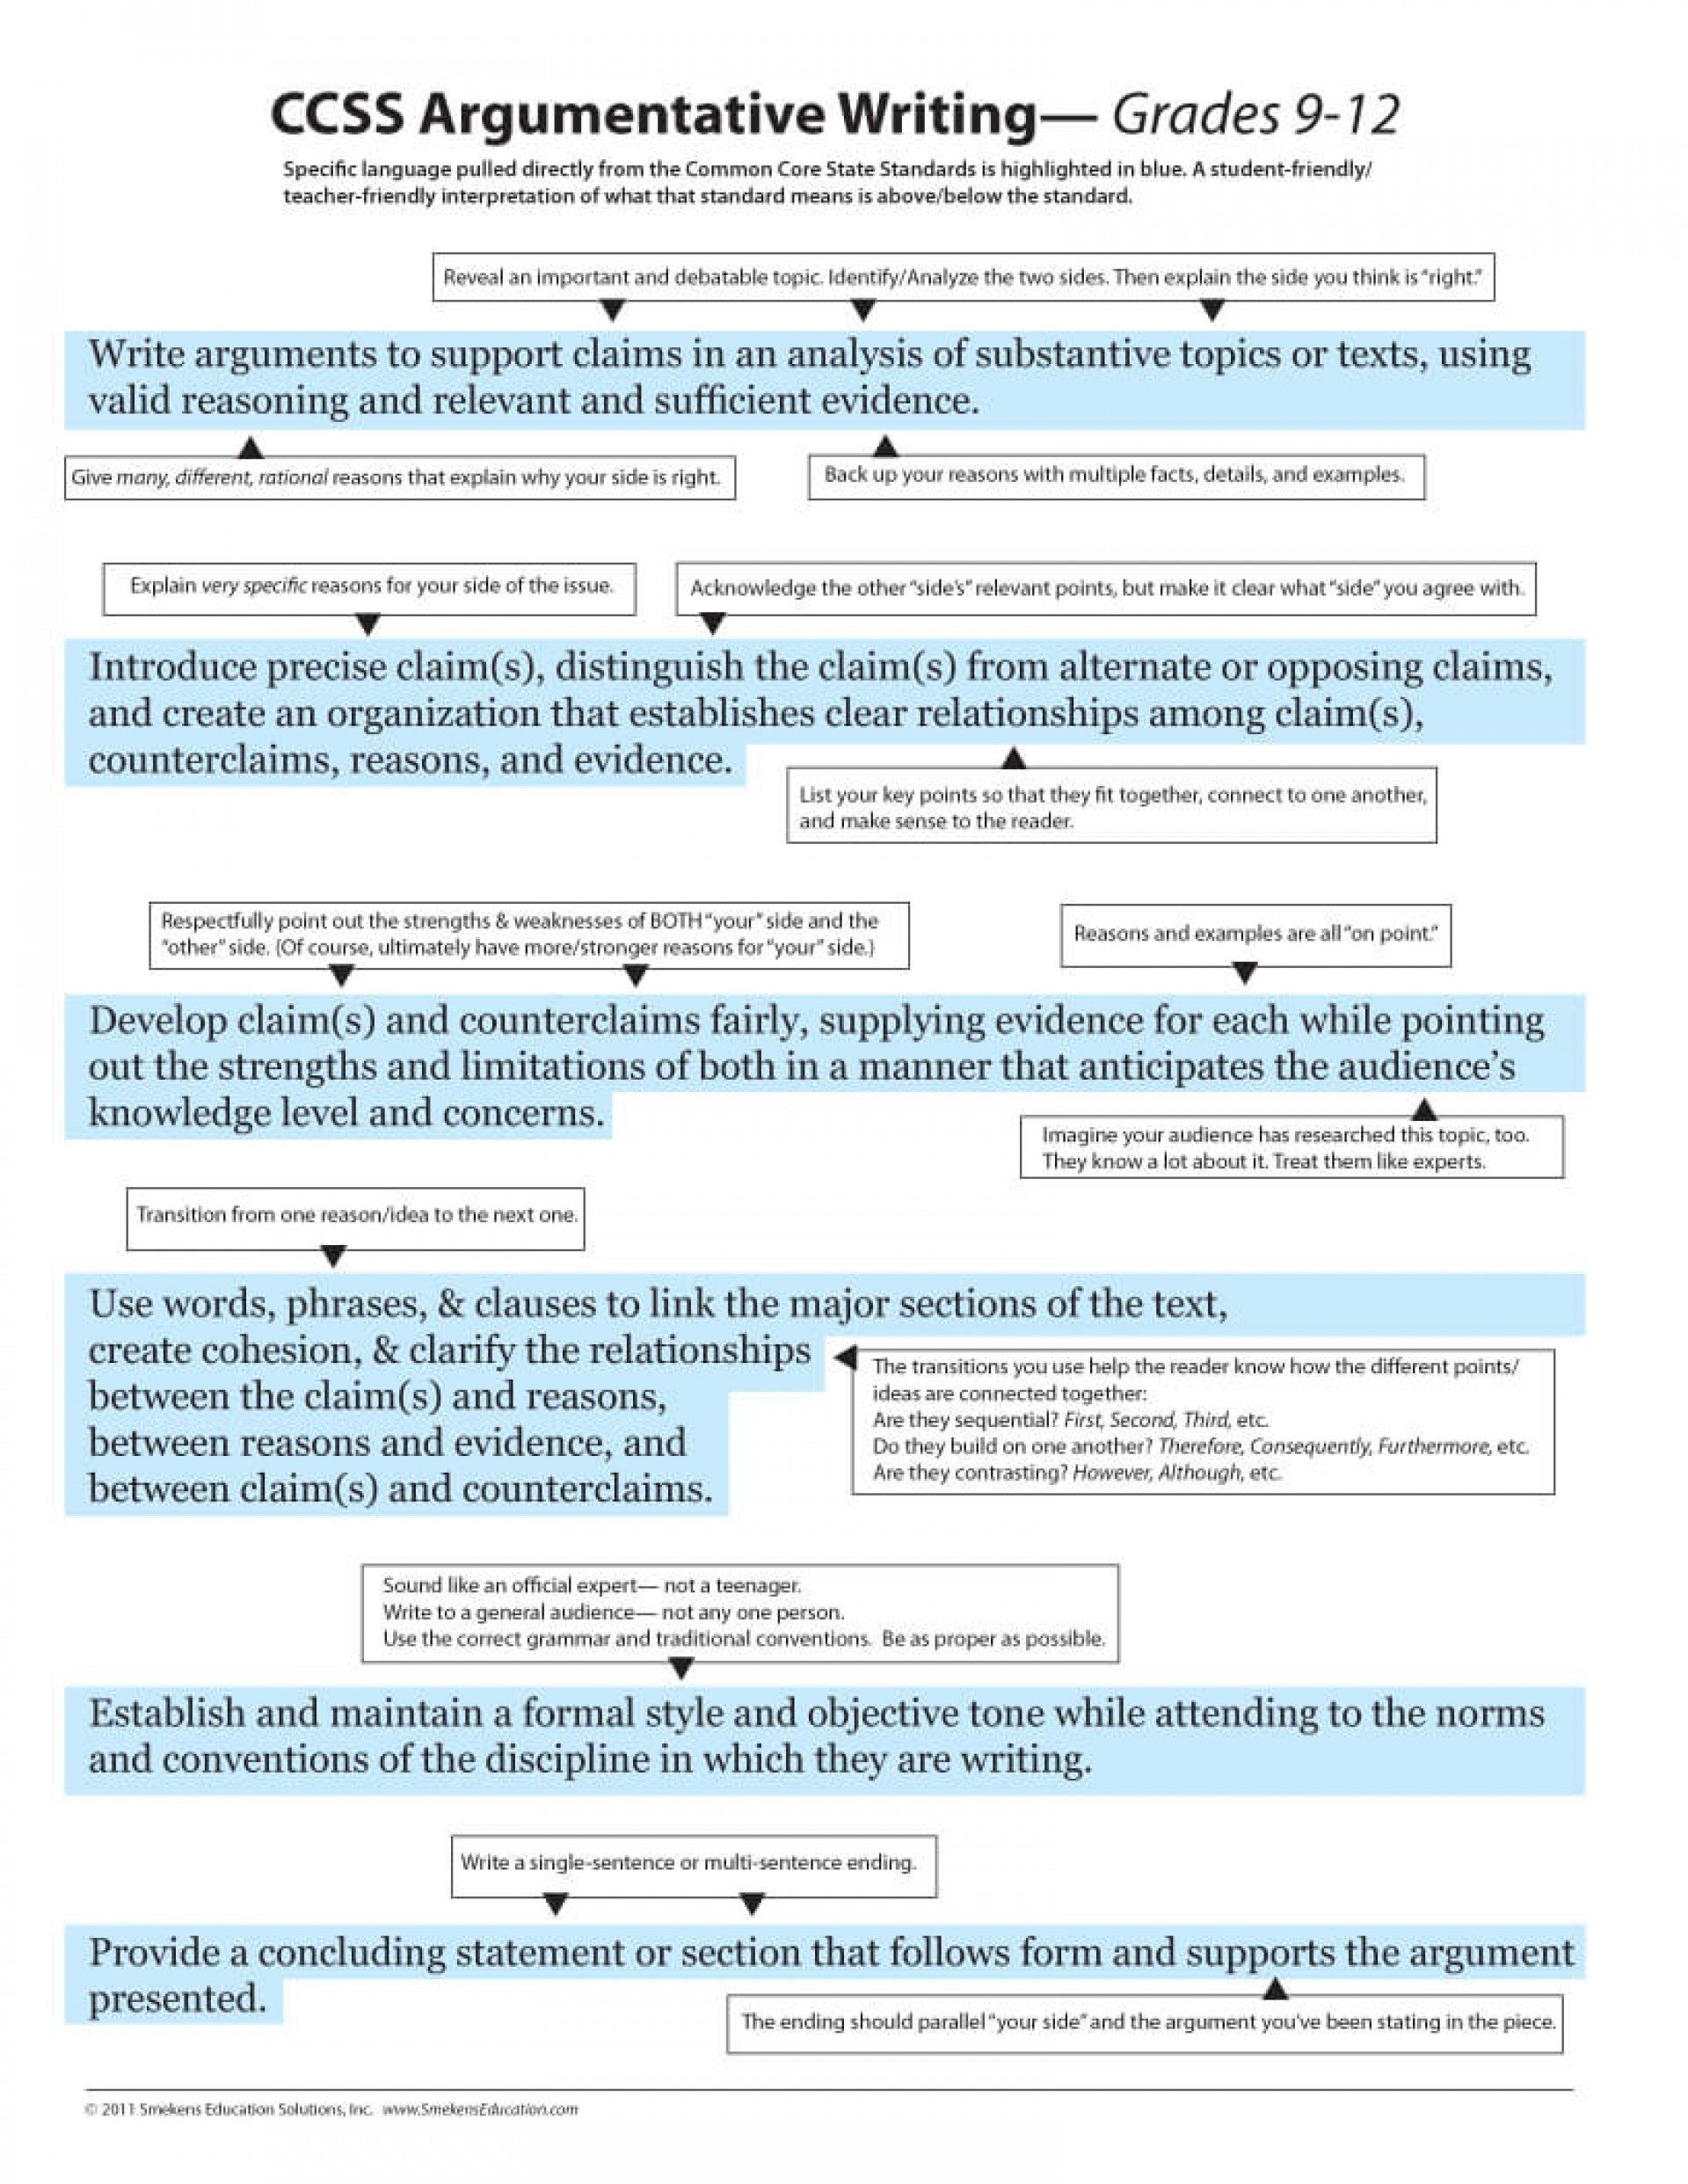 002 Essay Example The Proper Style For An Argumentative Is Ccss Grade 9 Stunning Formal Casual Informal Academic.friendly.informal.personal Academic. Friendly. Informal. Personal 1920